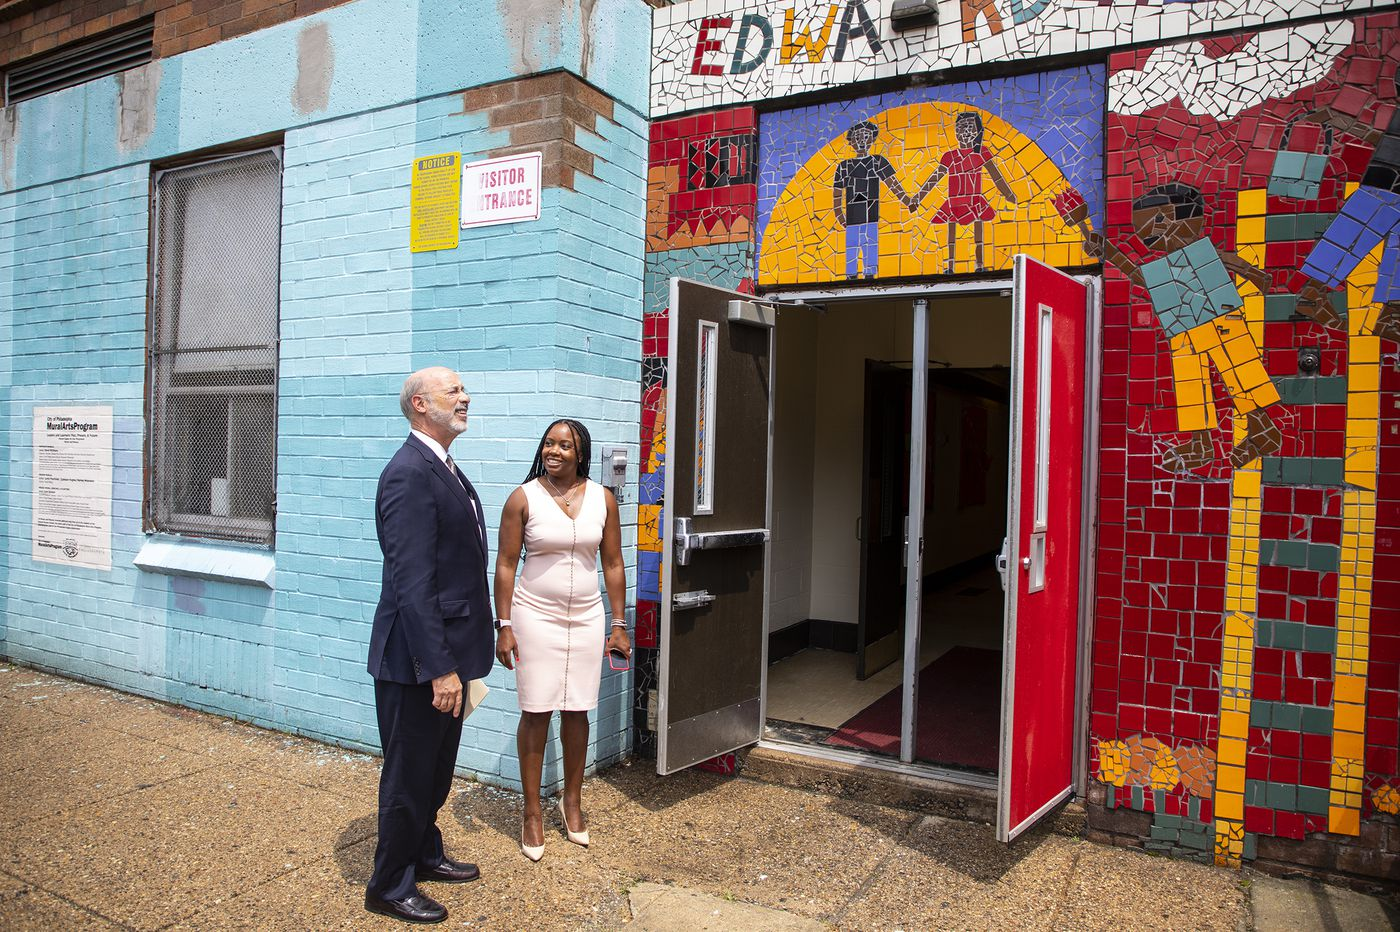 Gov. Wolf announces millions in funding to fix environmental hazards in Philly schools